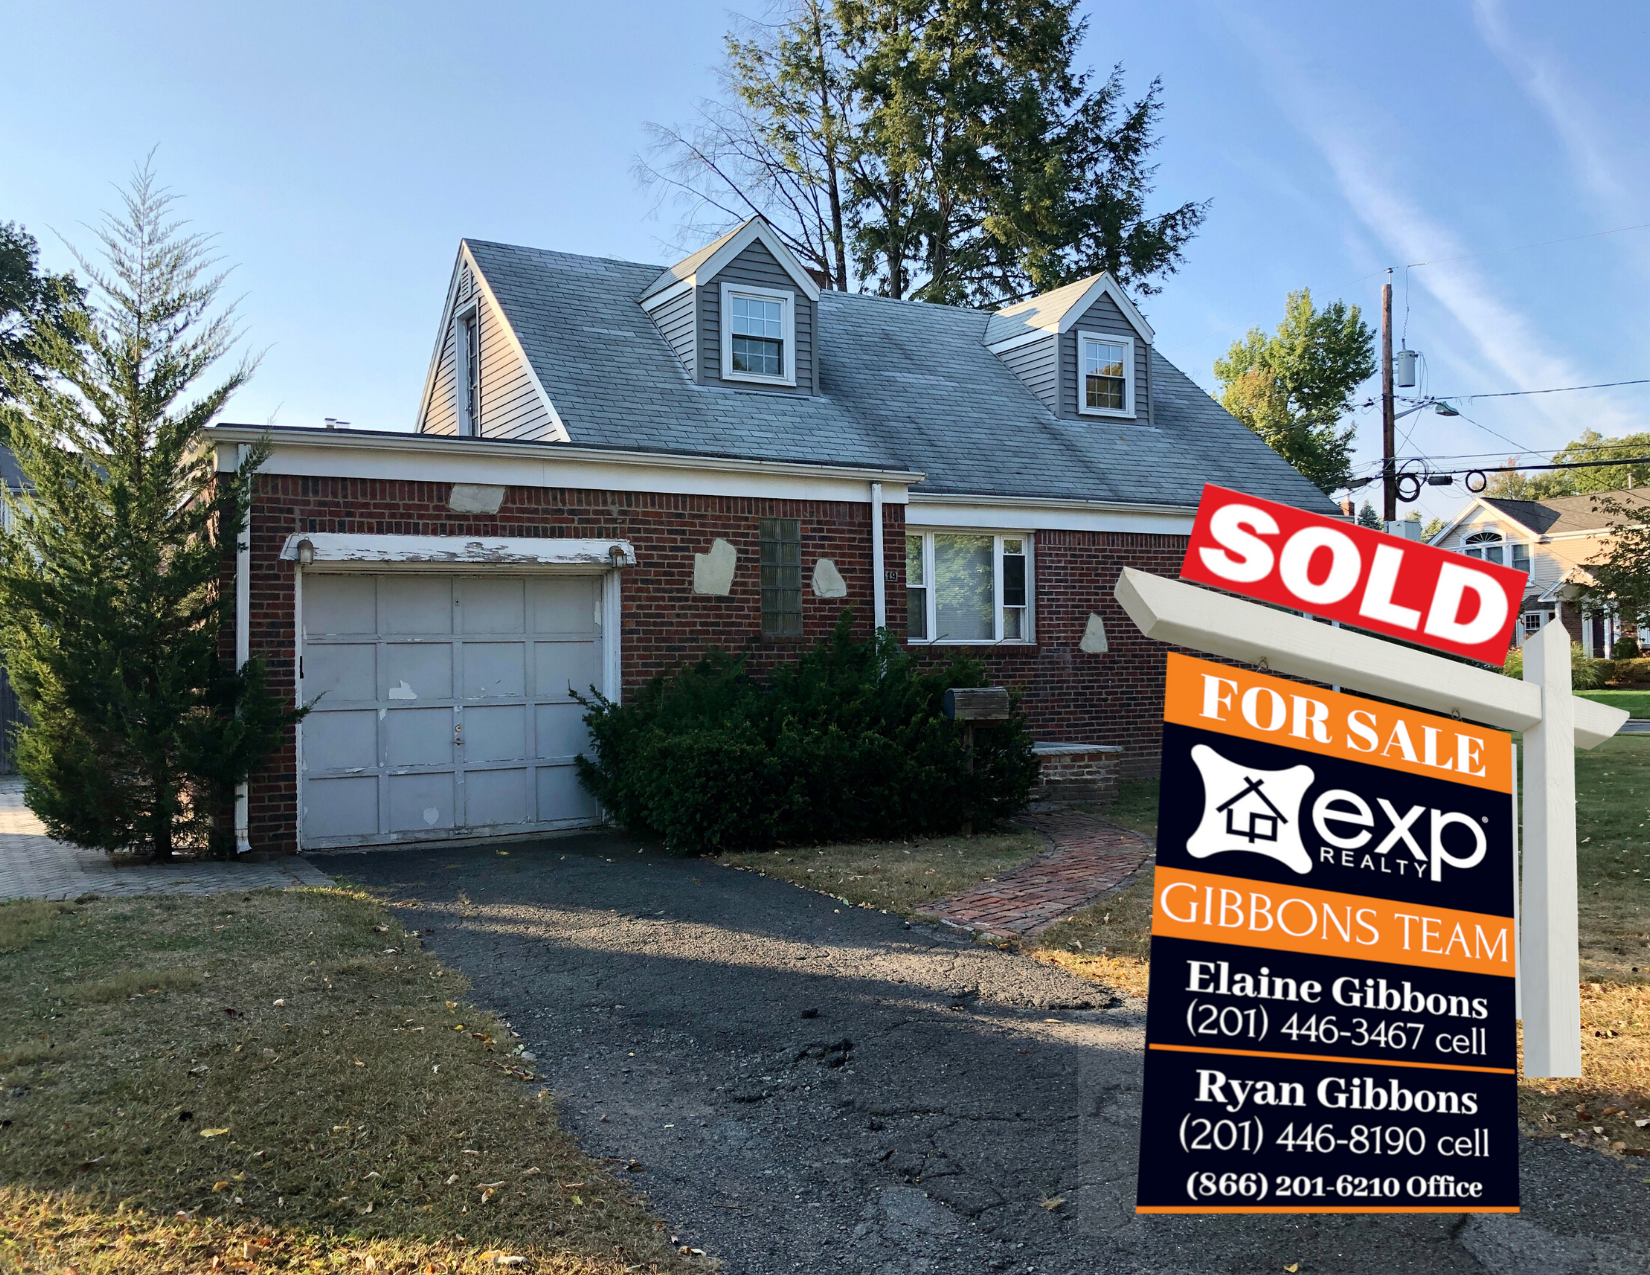 419 Oak Ave River Edge, NJ Sold by the Gibbons Team